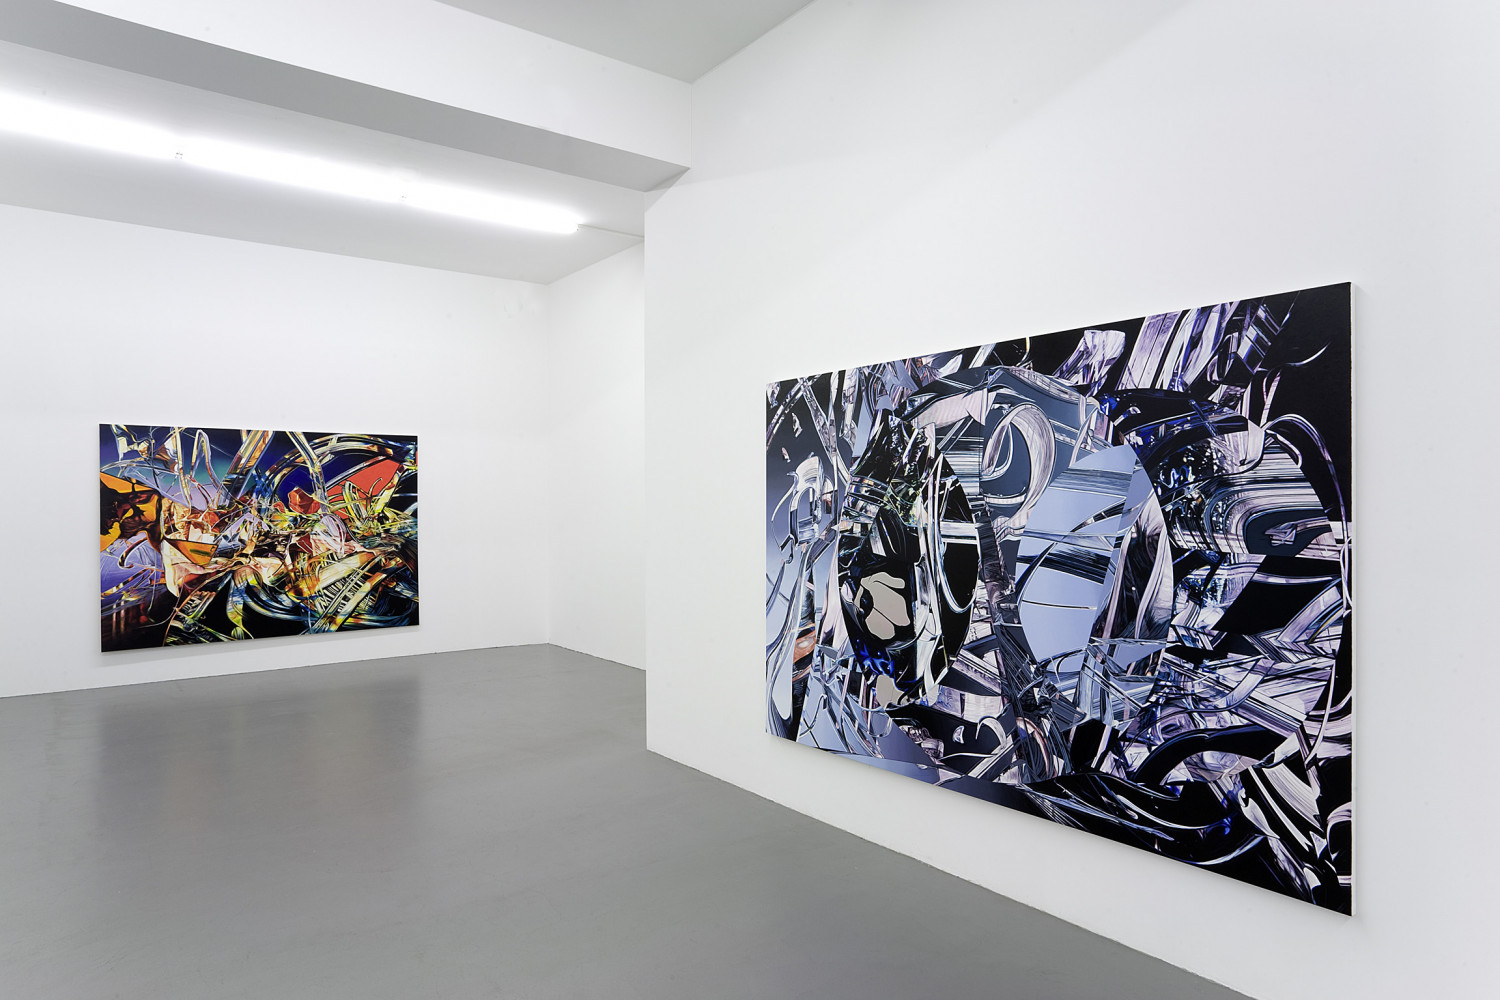 Sean Dawson, 'Sean Dawson  – LO-FI-SCI-PLI: Paintings', Installation view, Buchmann Galerie, 2008